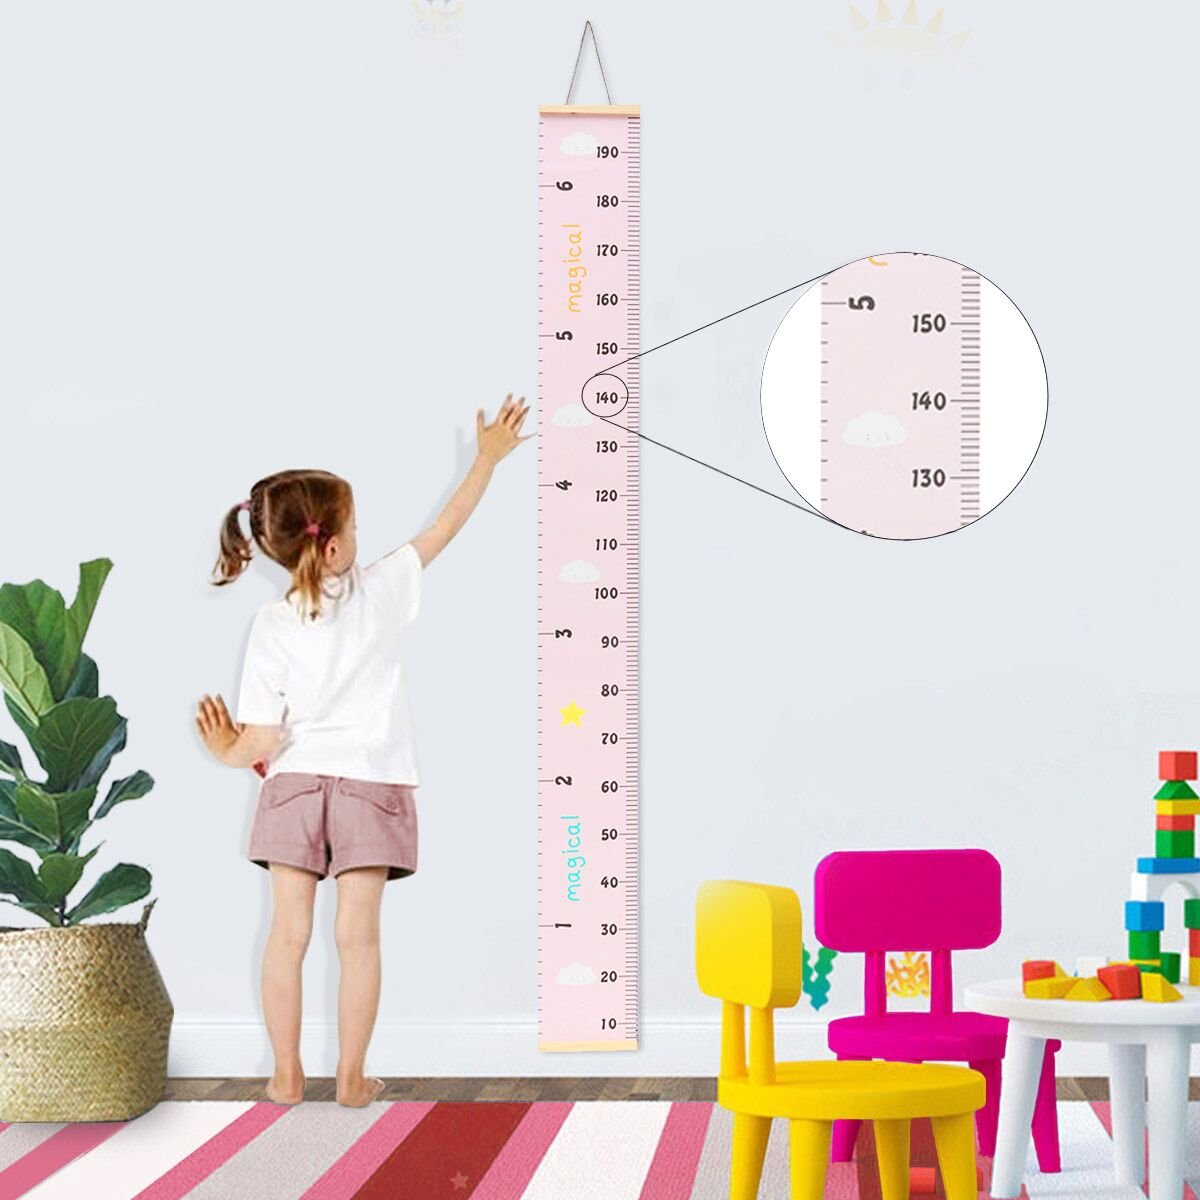 Jeteven Baby Hanging Height Chart Ruler Removable Growth Charts for Room Decor 79''x7.9'' (Original) Original Height Chart